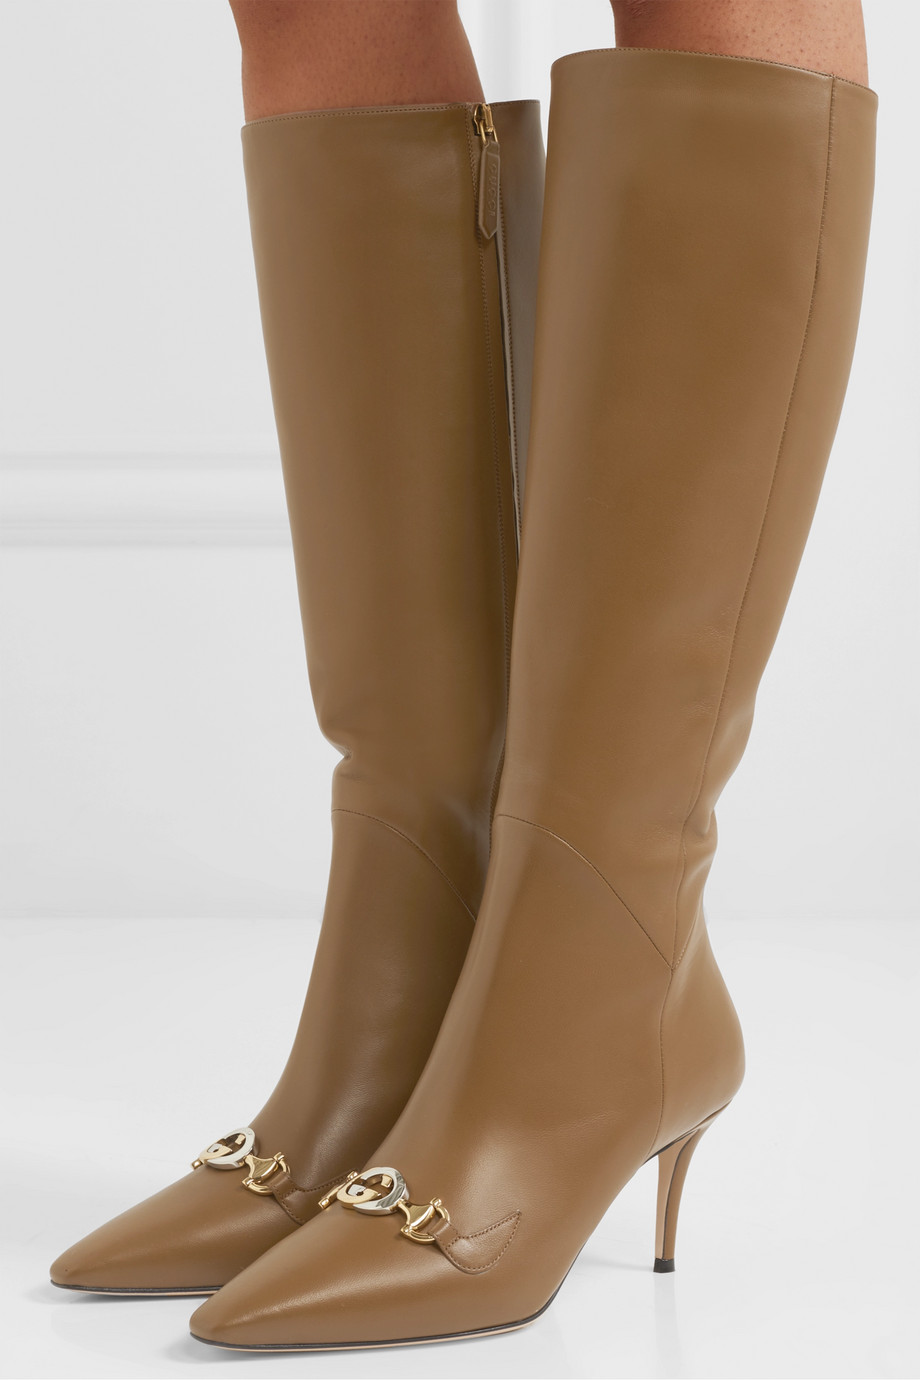 Gucci Zumi leather knee boots